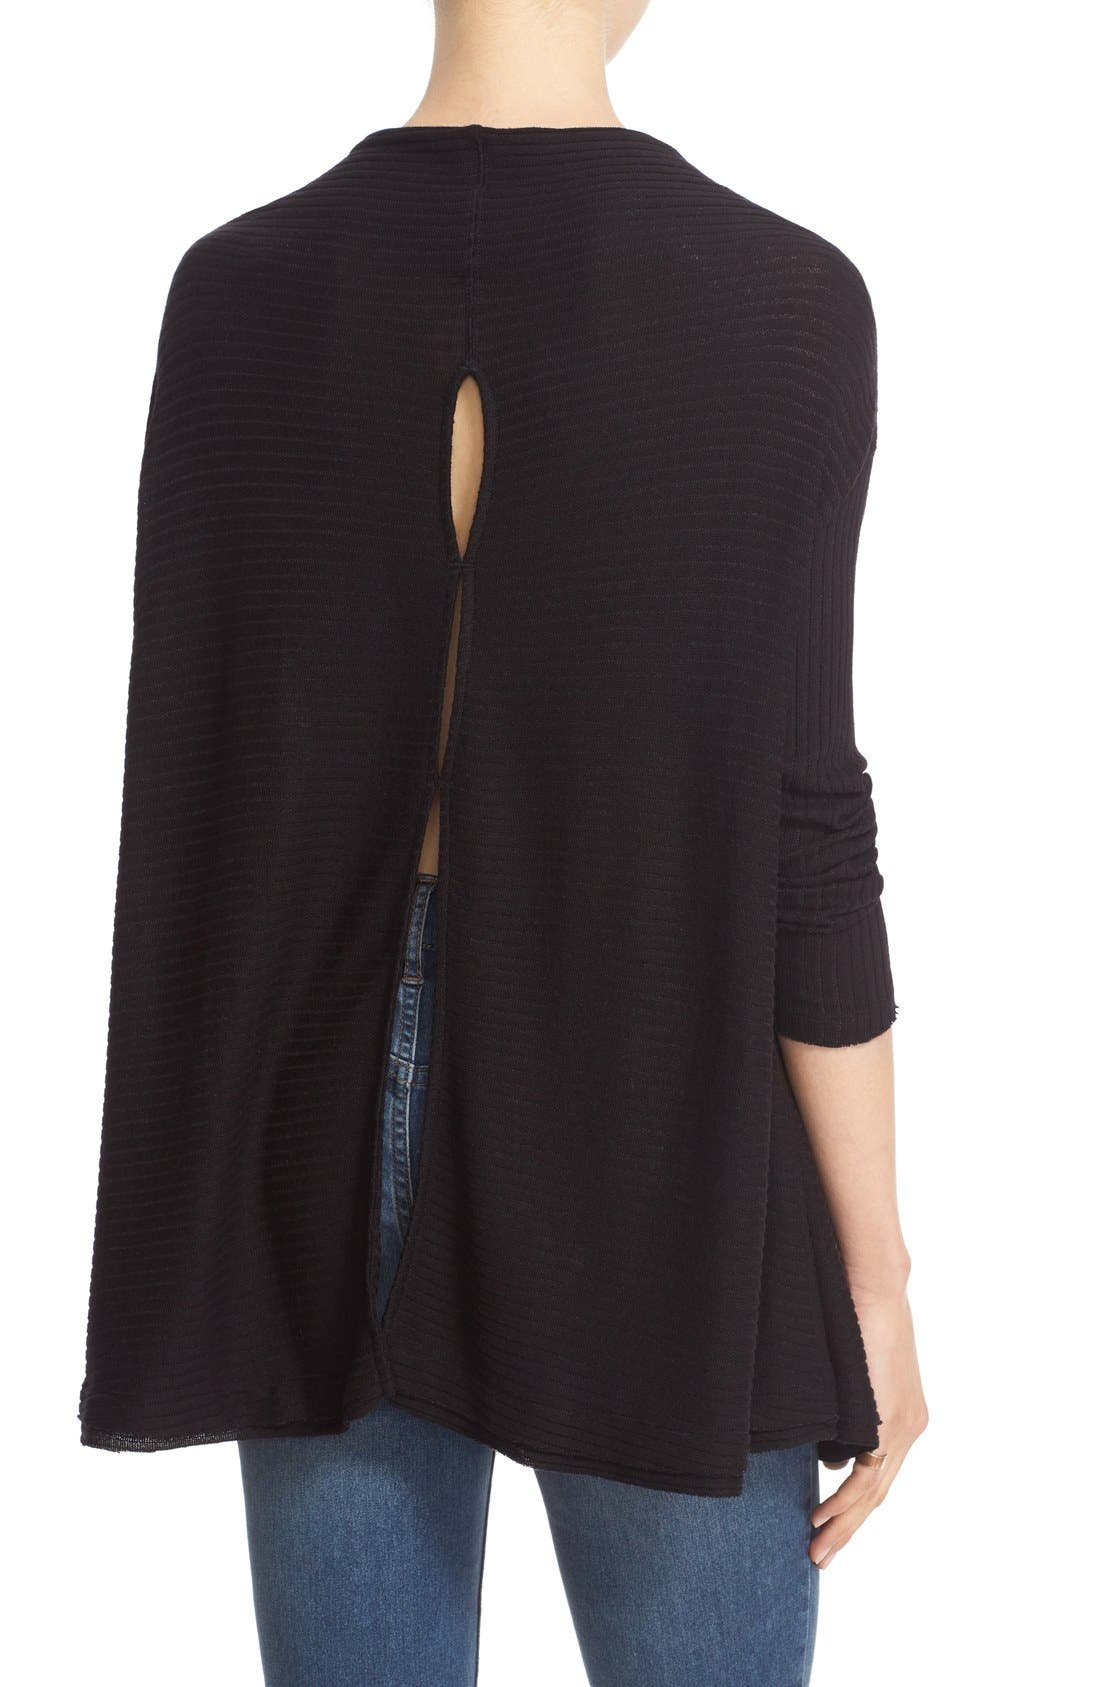 FREE PEOPLE, Lover Rib Split Back Pullover, Alternate thumbnail 8, color, 001